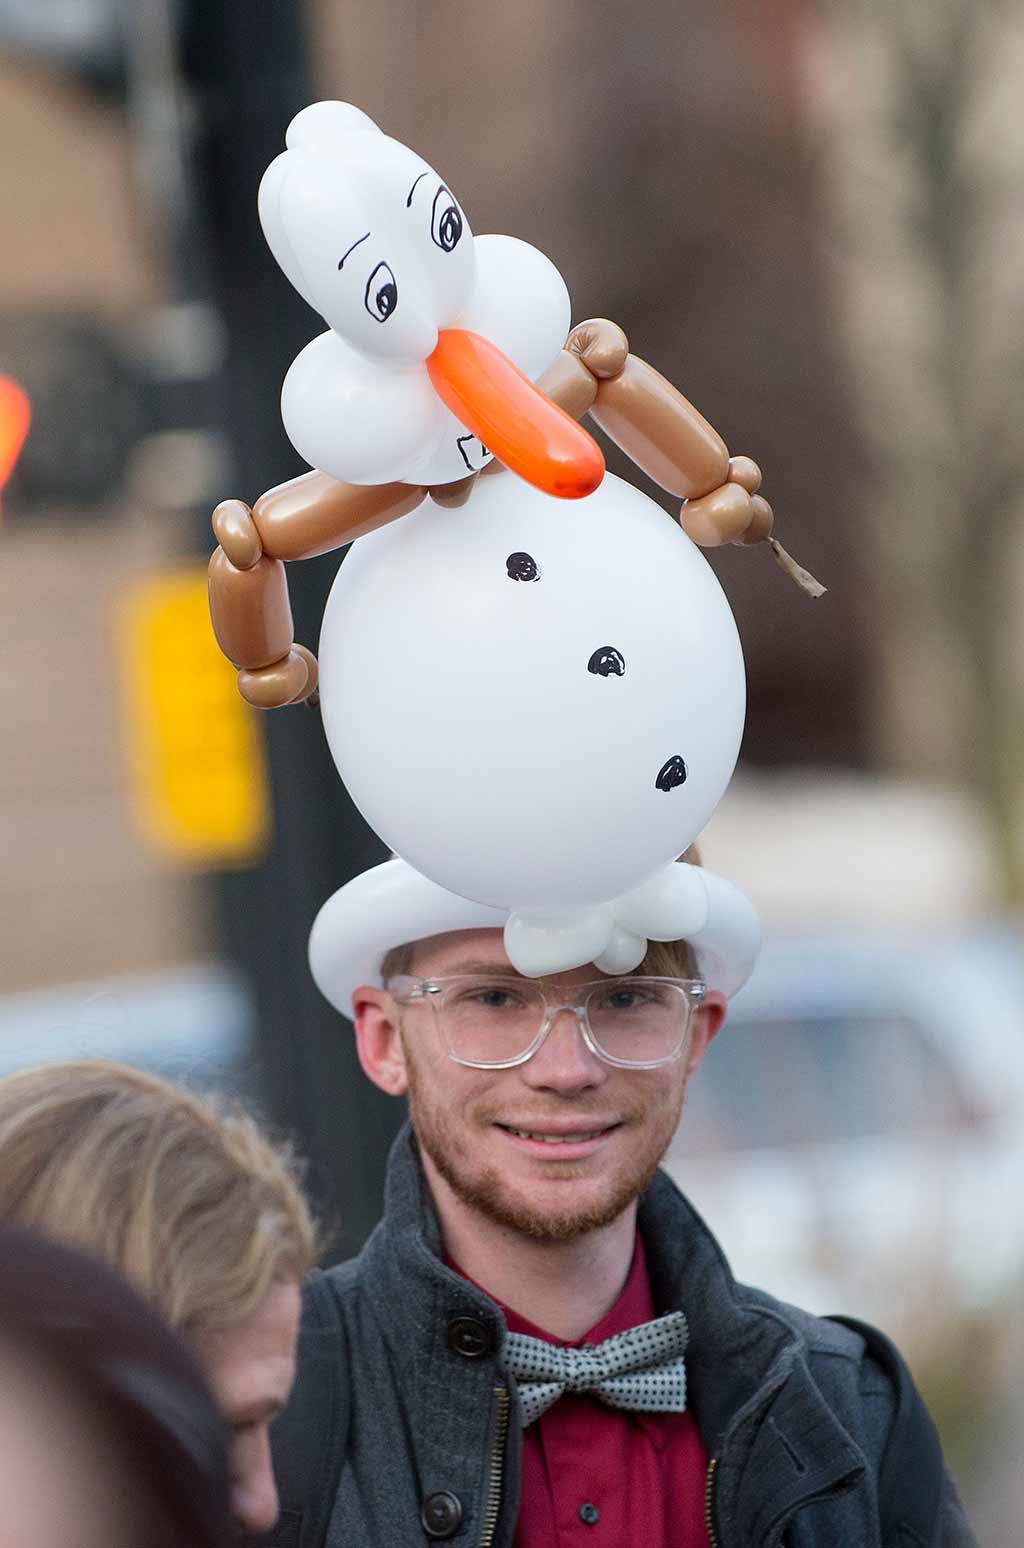 Man with balloon snowman hat